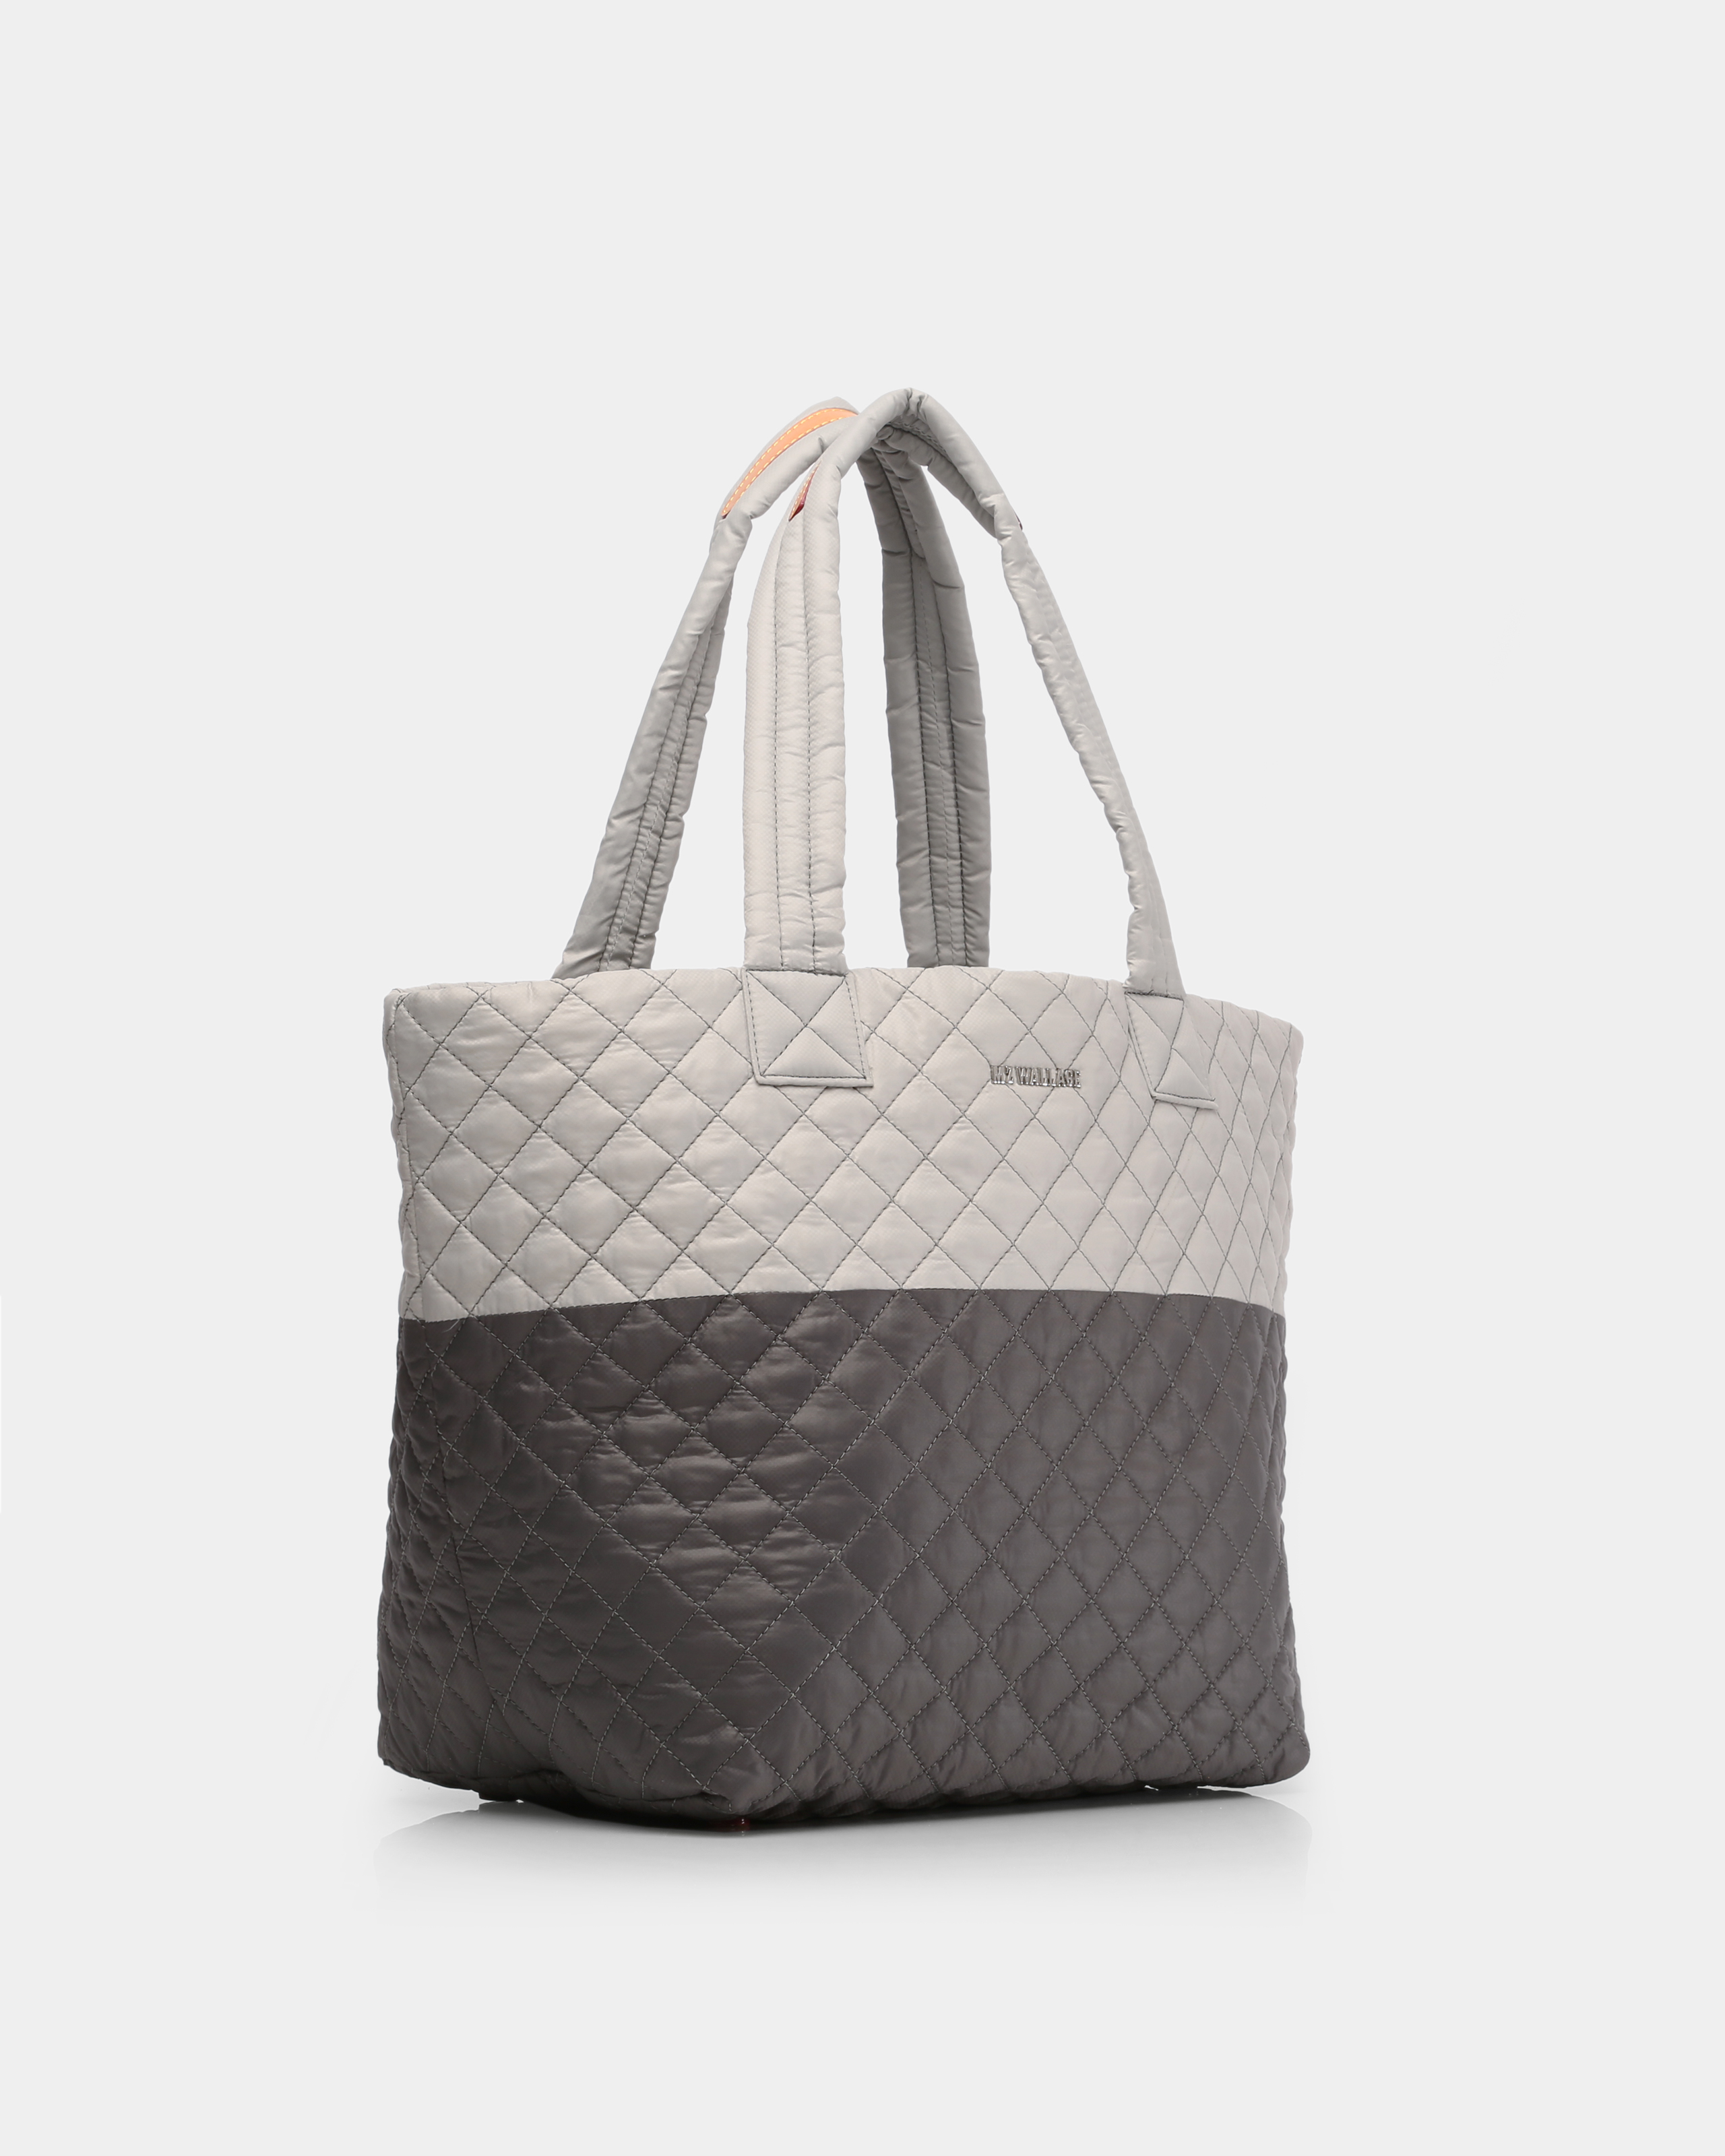 Paloma/Magnet Oxford Medium Metro Tote (3761366) in color Paloma & Magnet